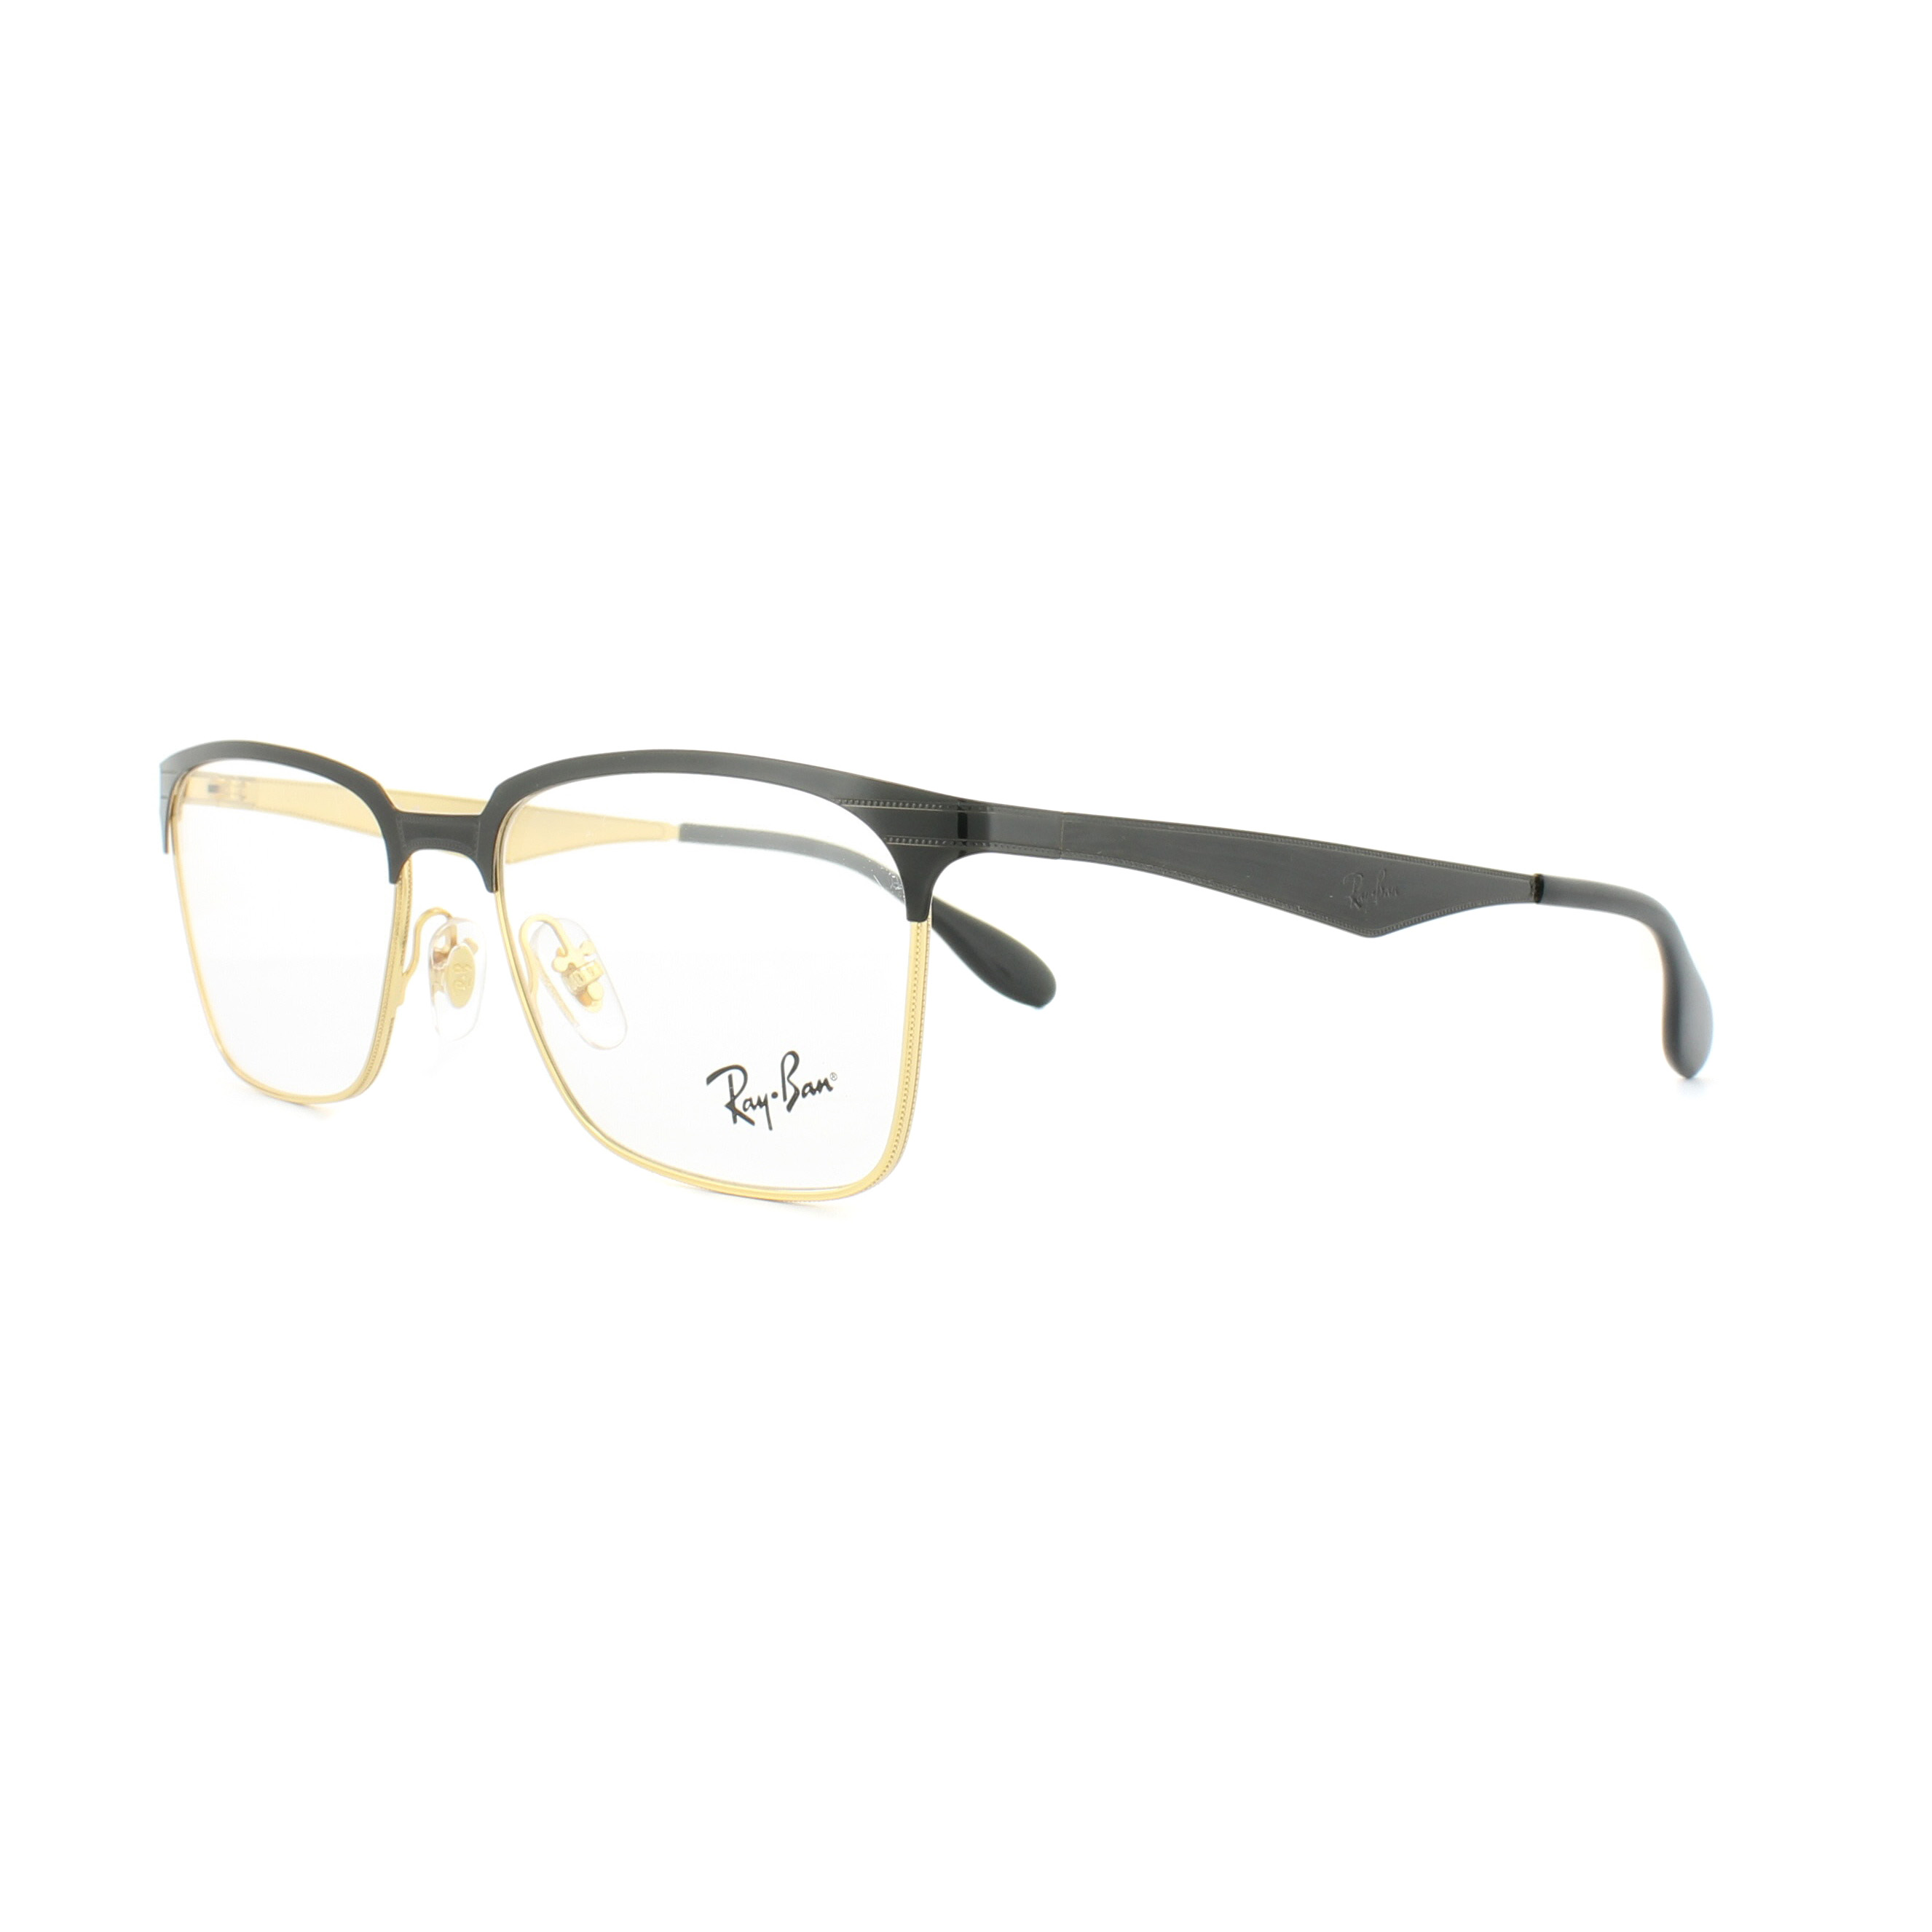 b38589594c6 Cheap Ray-Ban RX 6344 Glasses Frames - Discounted Sunglasses